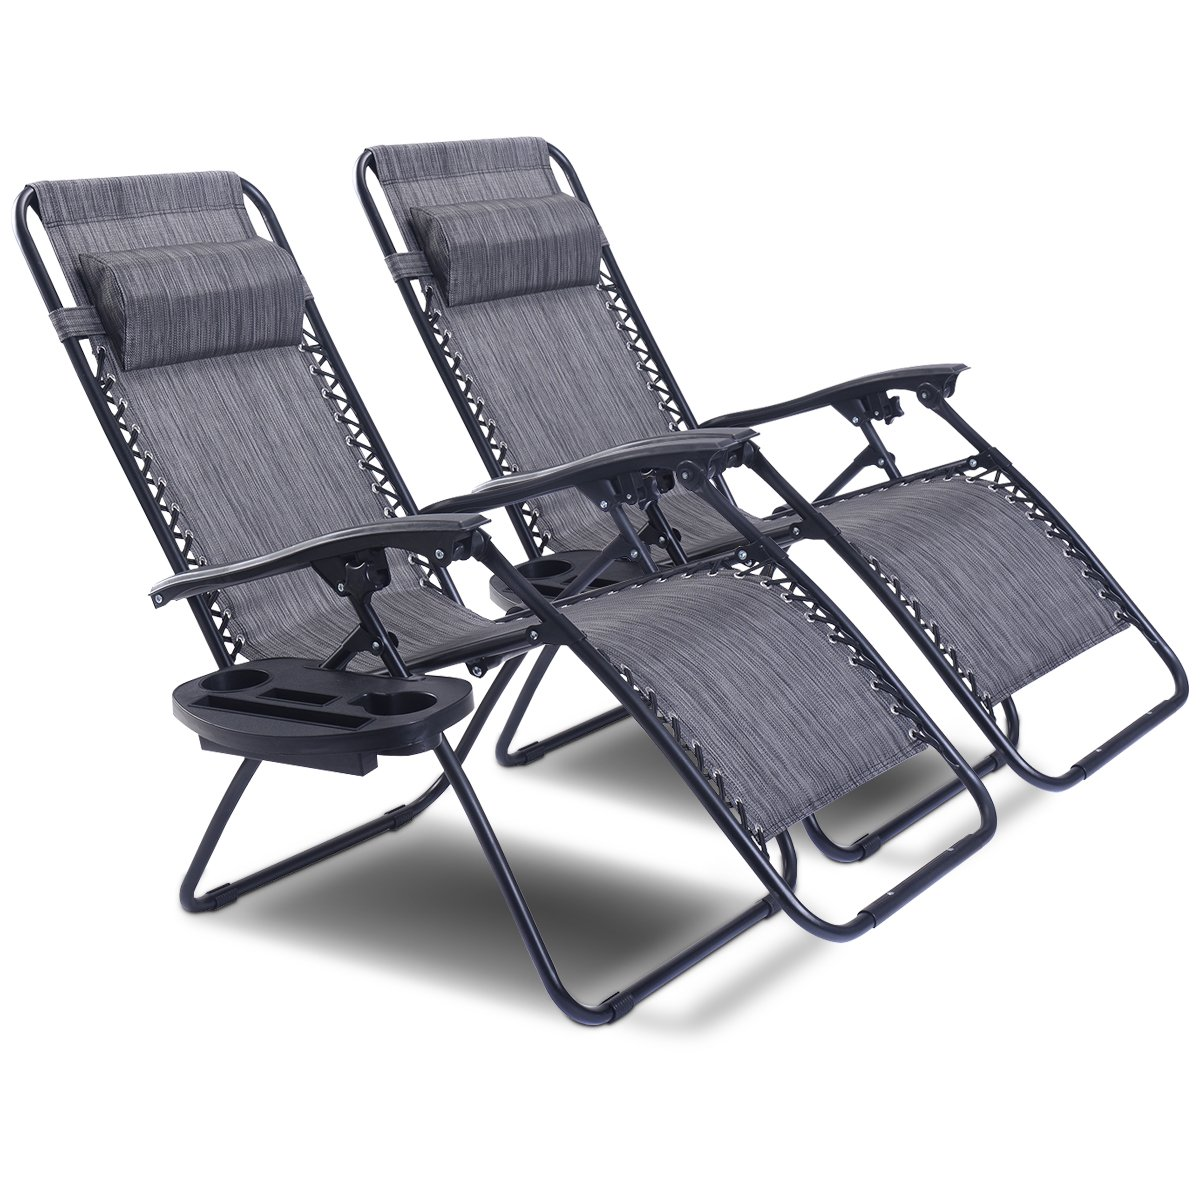 Goplus Zero Gravity Chair Set 2 Pack Adjustable Folding Lounge Recliners for Patio Outdoor Yard Beach Pool w/Cup Holder, 300-lb Weight Capacity (Light Gray) by Goplus